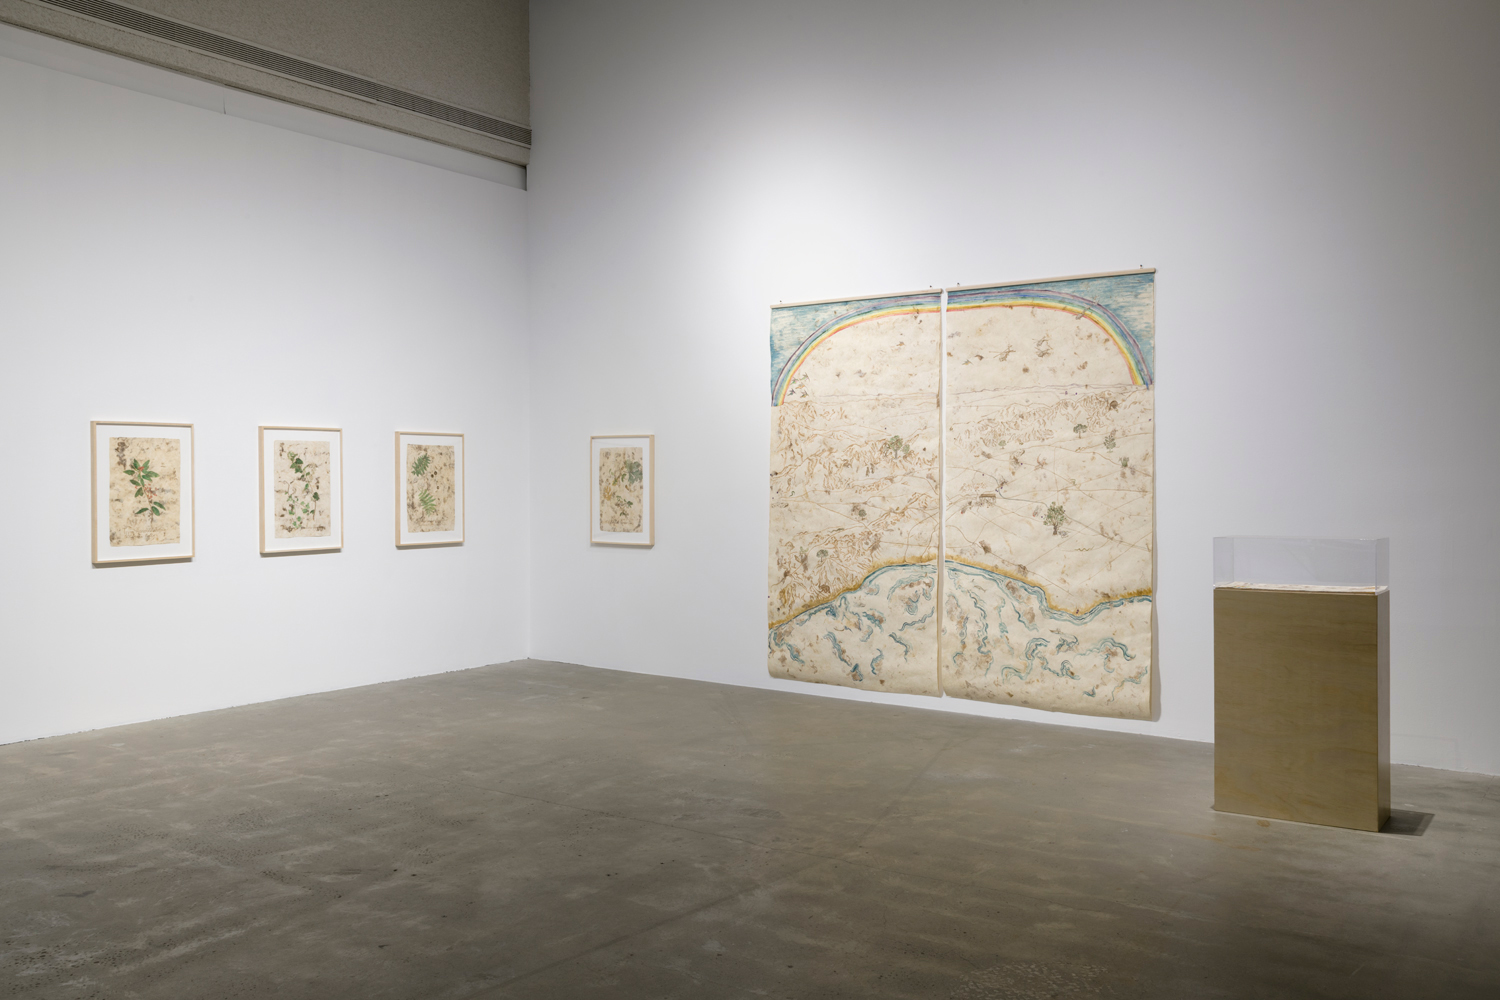 In this artwork installation by the artist Sandy Rodriguez, there are four framed artworks hanging on the wall. These artworks depict various plants native to California, including Hollyleaf Cherry, Oak, Walnut and California Holly, and are painted on hand-made amate paper with paint pigments made from plants foraged by the artist. To right of these small works is a large scale painting in a diptych format. This work is also painted on hand-made amate paper with paint pigments made from plants foraged by the artist. This work depicts a map of the San Gabriel and Santa Monica mountains with a rainbow overhead at the top. It also depicts scenes from nature - hummingbirds, California bear etc - as well as traumatic events and sites from the region's history - incarceration of people of color, lynching, immigration detention centersThere is also a display case with a legend for this map to the right of the work. The legend is also painted on hand-made amate paper with paint pigments made from plants foraged by the artist.